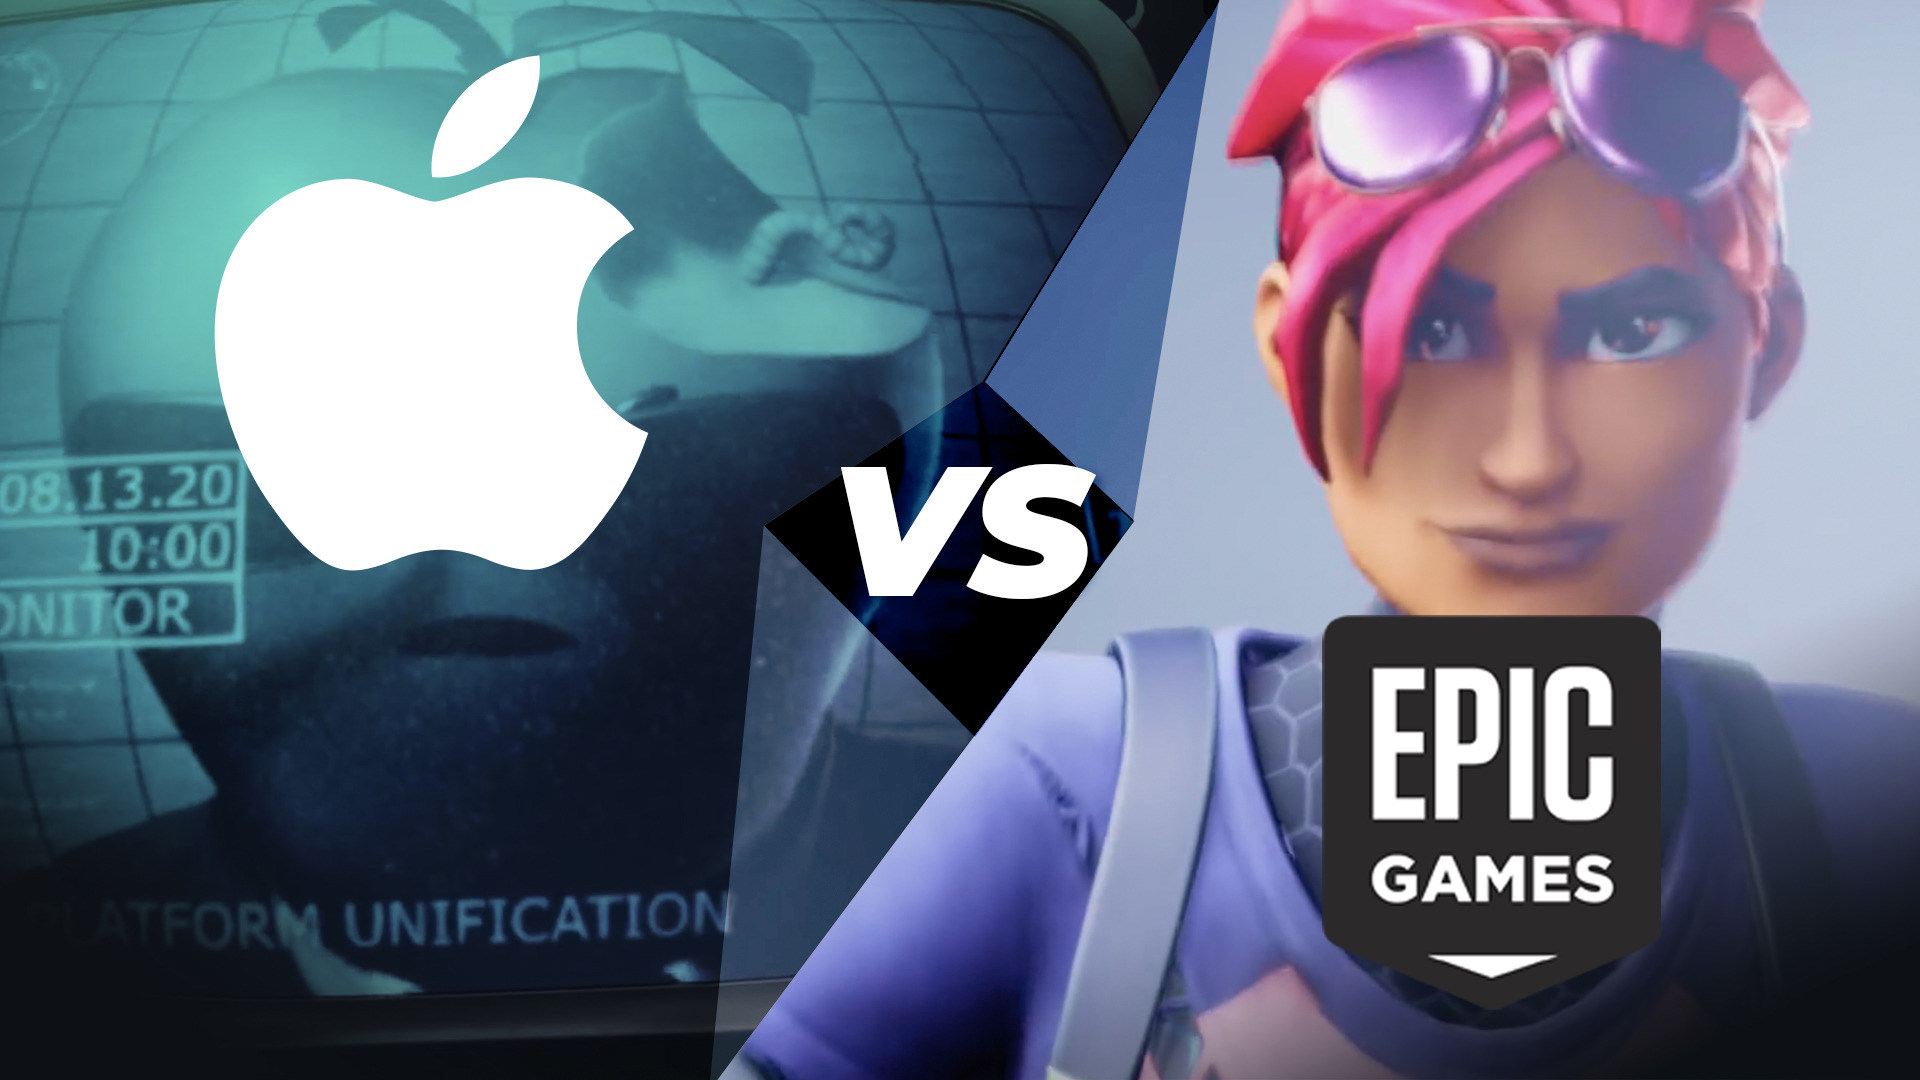 Apple, Epic Games, Epic Games Store, Fortnite, Epic, Games Store, Videospiel Charaktere, Epic vs Apple, Apple vs Epic, 1984, Fortnite Battle Royale, Mr. Apple